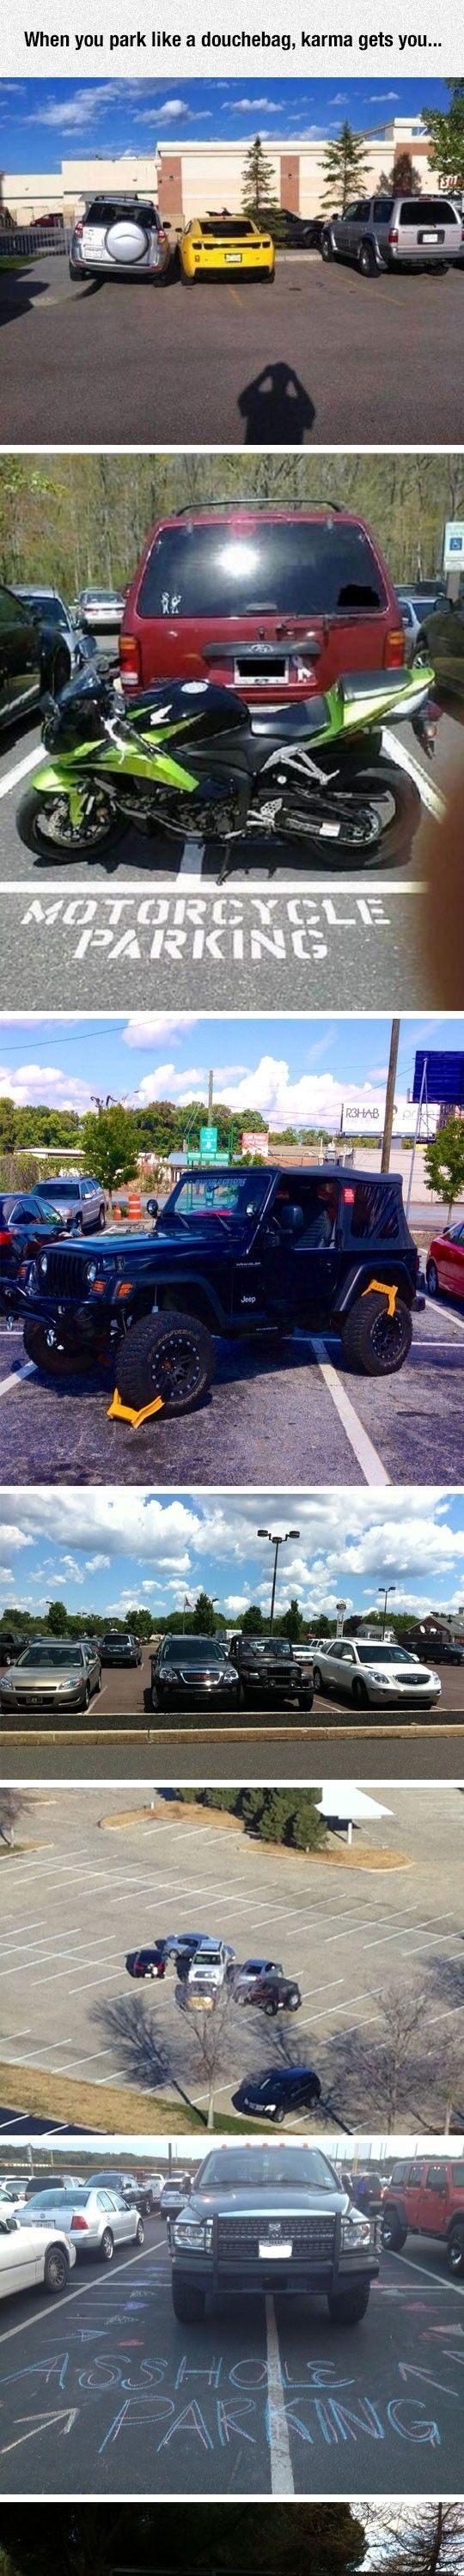 Parking Like A Jerk Is Going To Get You In Trouble#funny #lol #lolzonline